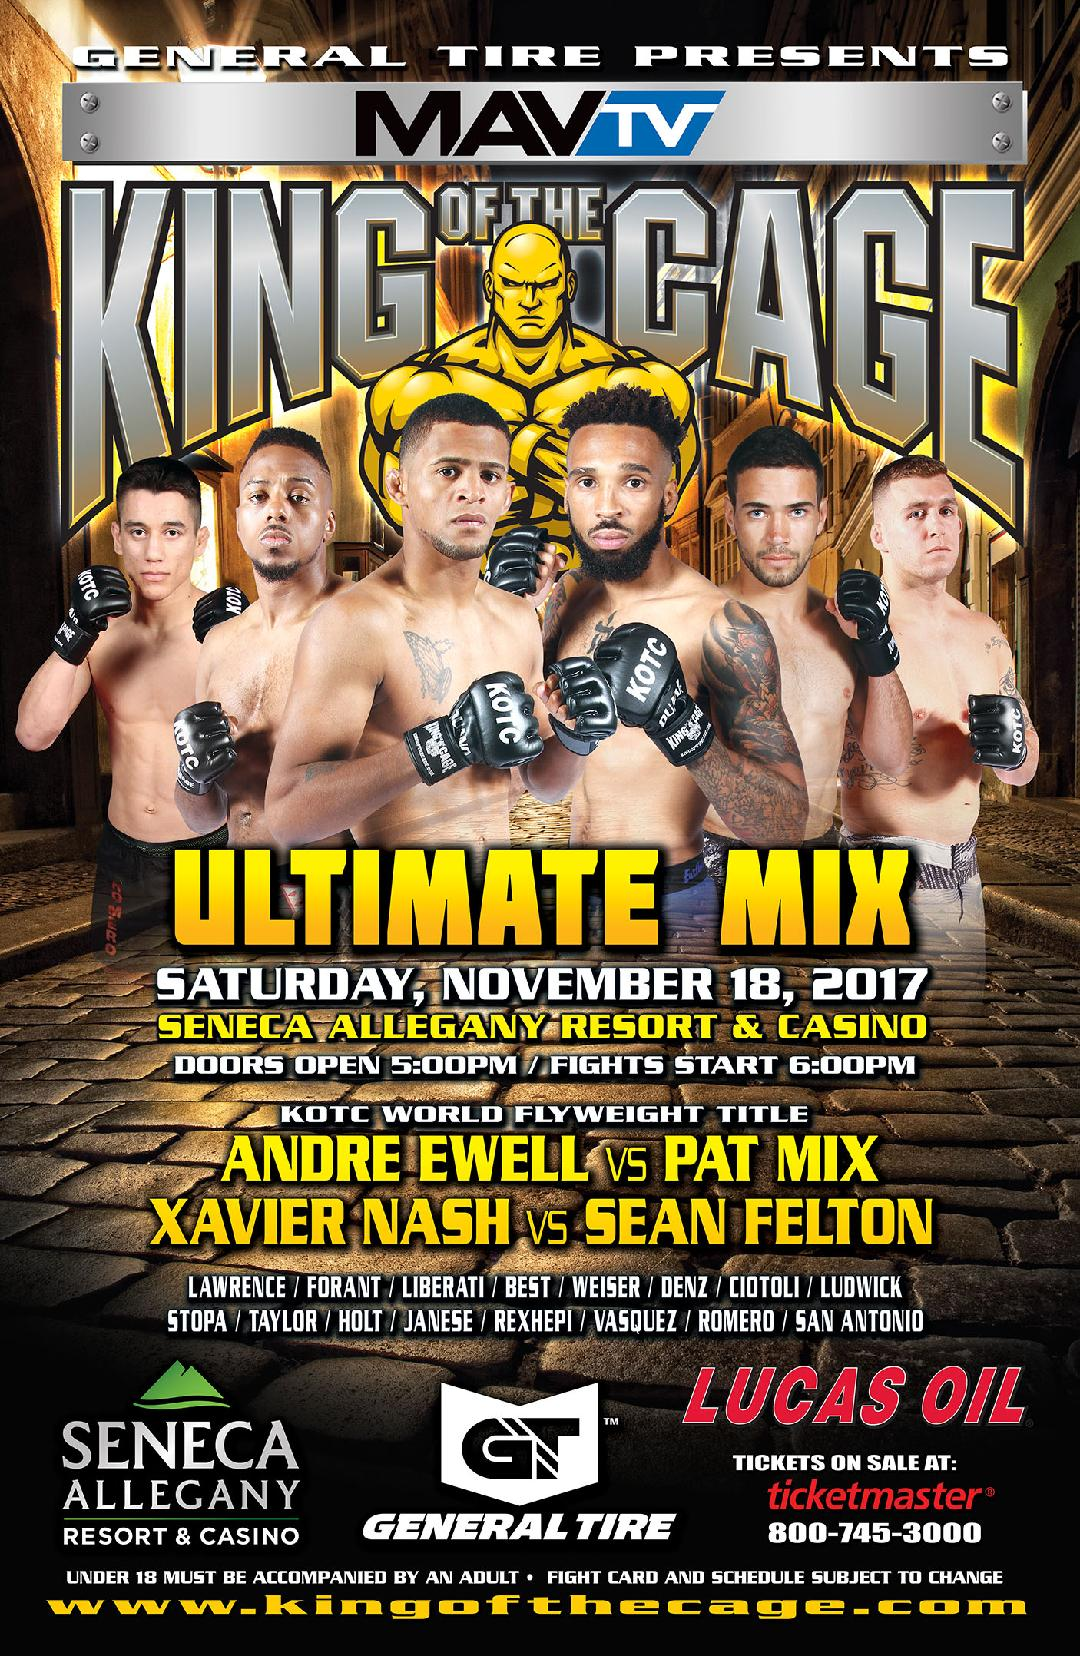 """King of the Cage Announces Fight Card for Seneca Allegany Resort & Casino on November 18 for """"ULTIMATE MIX"""""""